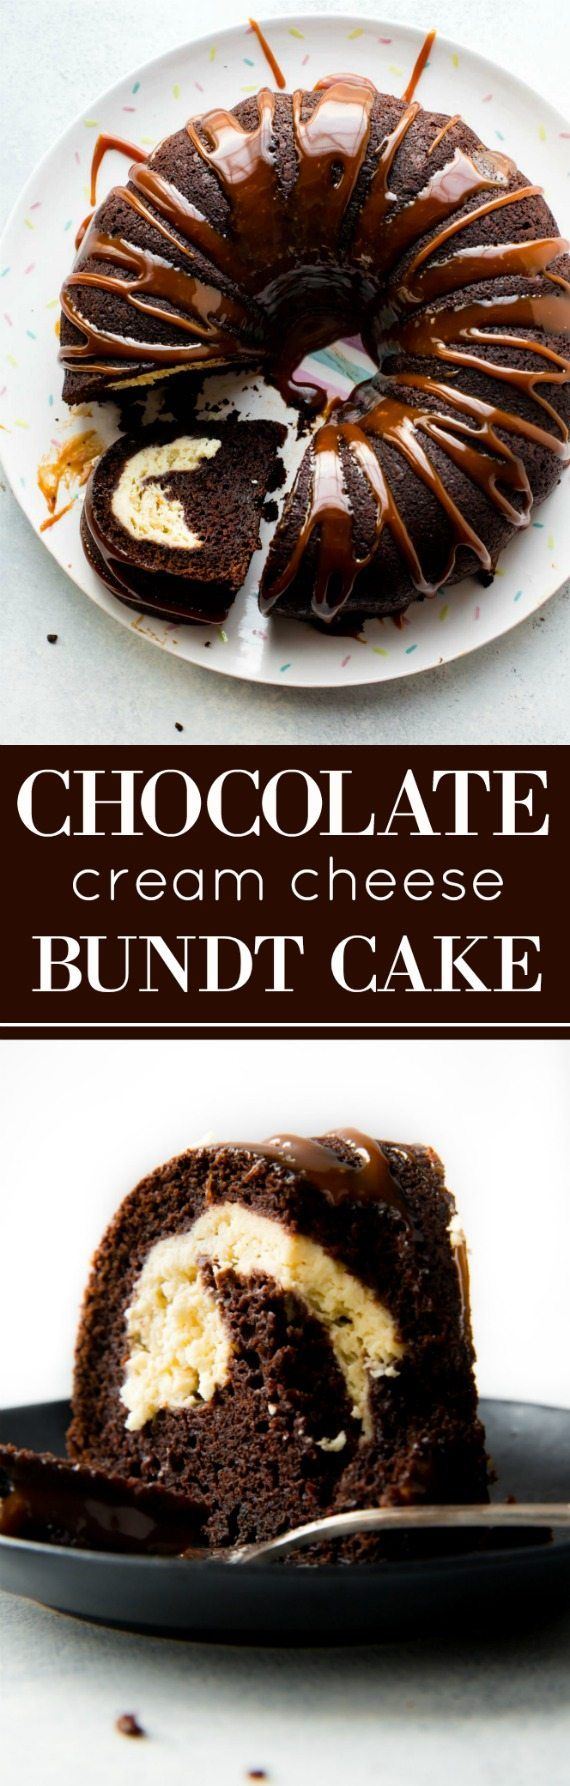 This #chocolate #cream #cheese bundt #cake is #completely over the top-- and is finished off with #salted #caramel. #Recipes #Recipesgrowtopia #recipesmycafe #recipespixelworld #recipesgt #recipescake #recipeschicken #recipesliquid #food #foodporn #recipesfood #cake #cookies #healthy #mom #kids #wedding #cakewedding